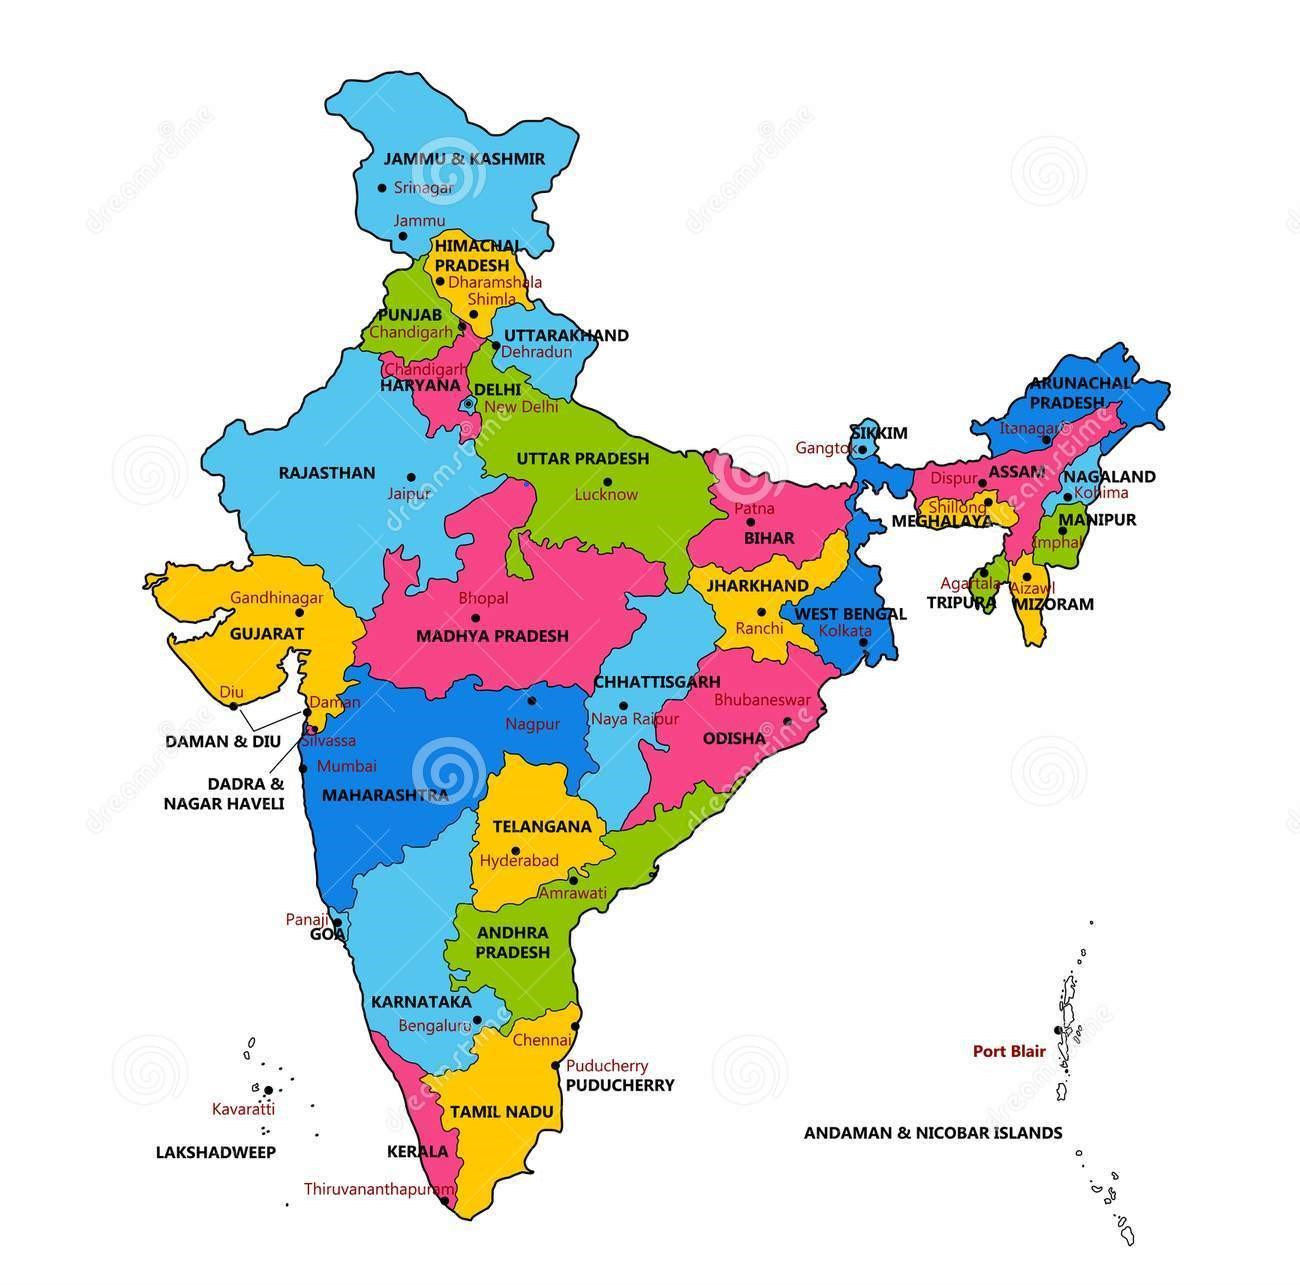 Short Note On India - Area, Religion, Population, Government